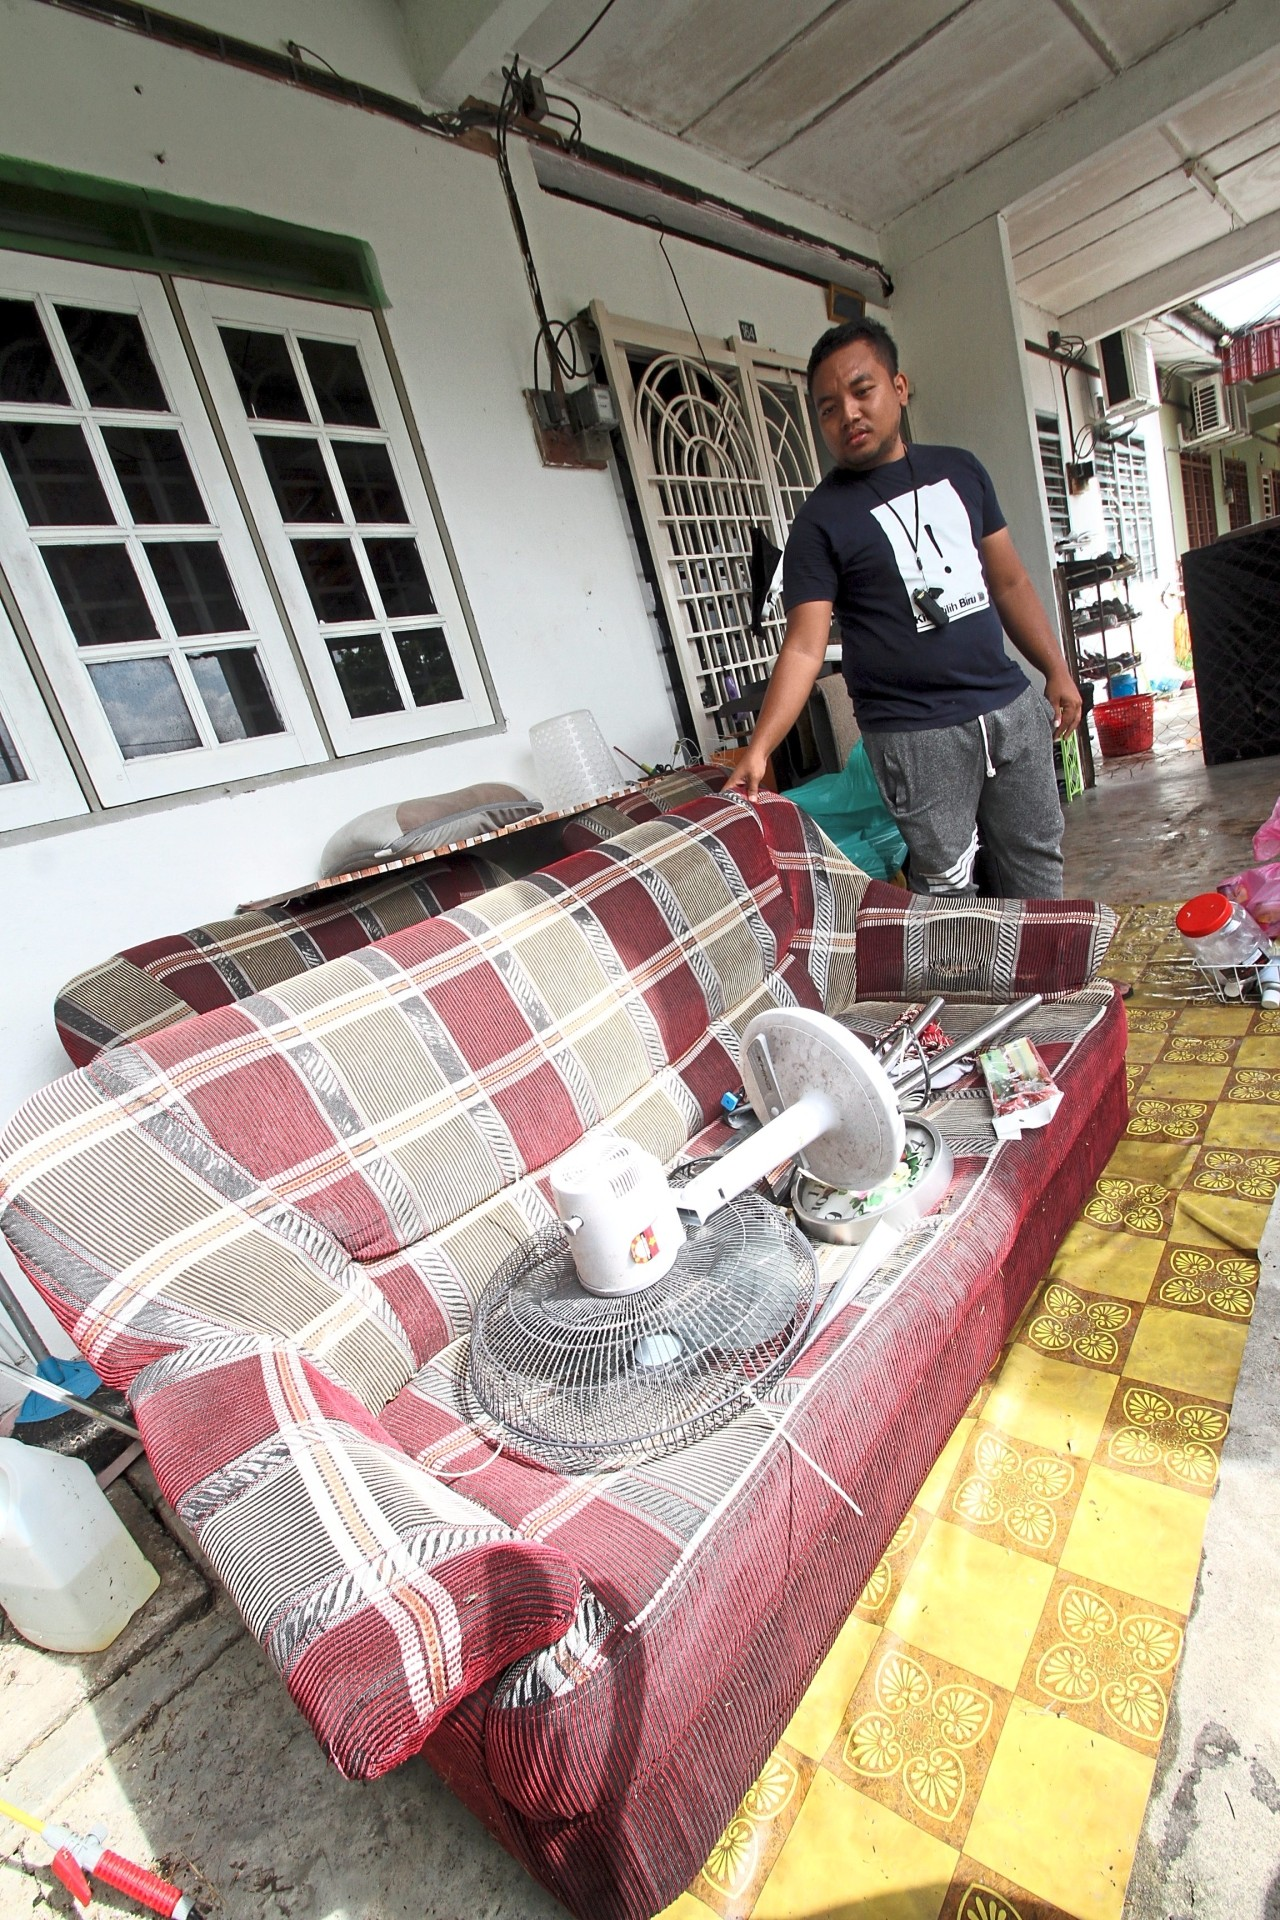 Hosni said most of his furniture and electrical items were damaged by floodwaters. — Photos: RONNIE CHIN/The Star